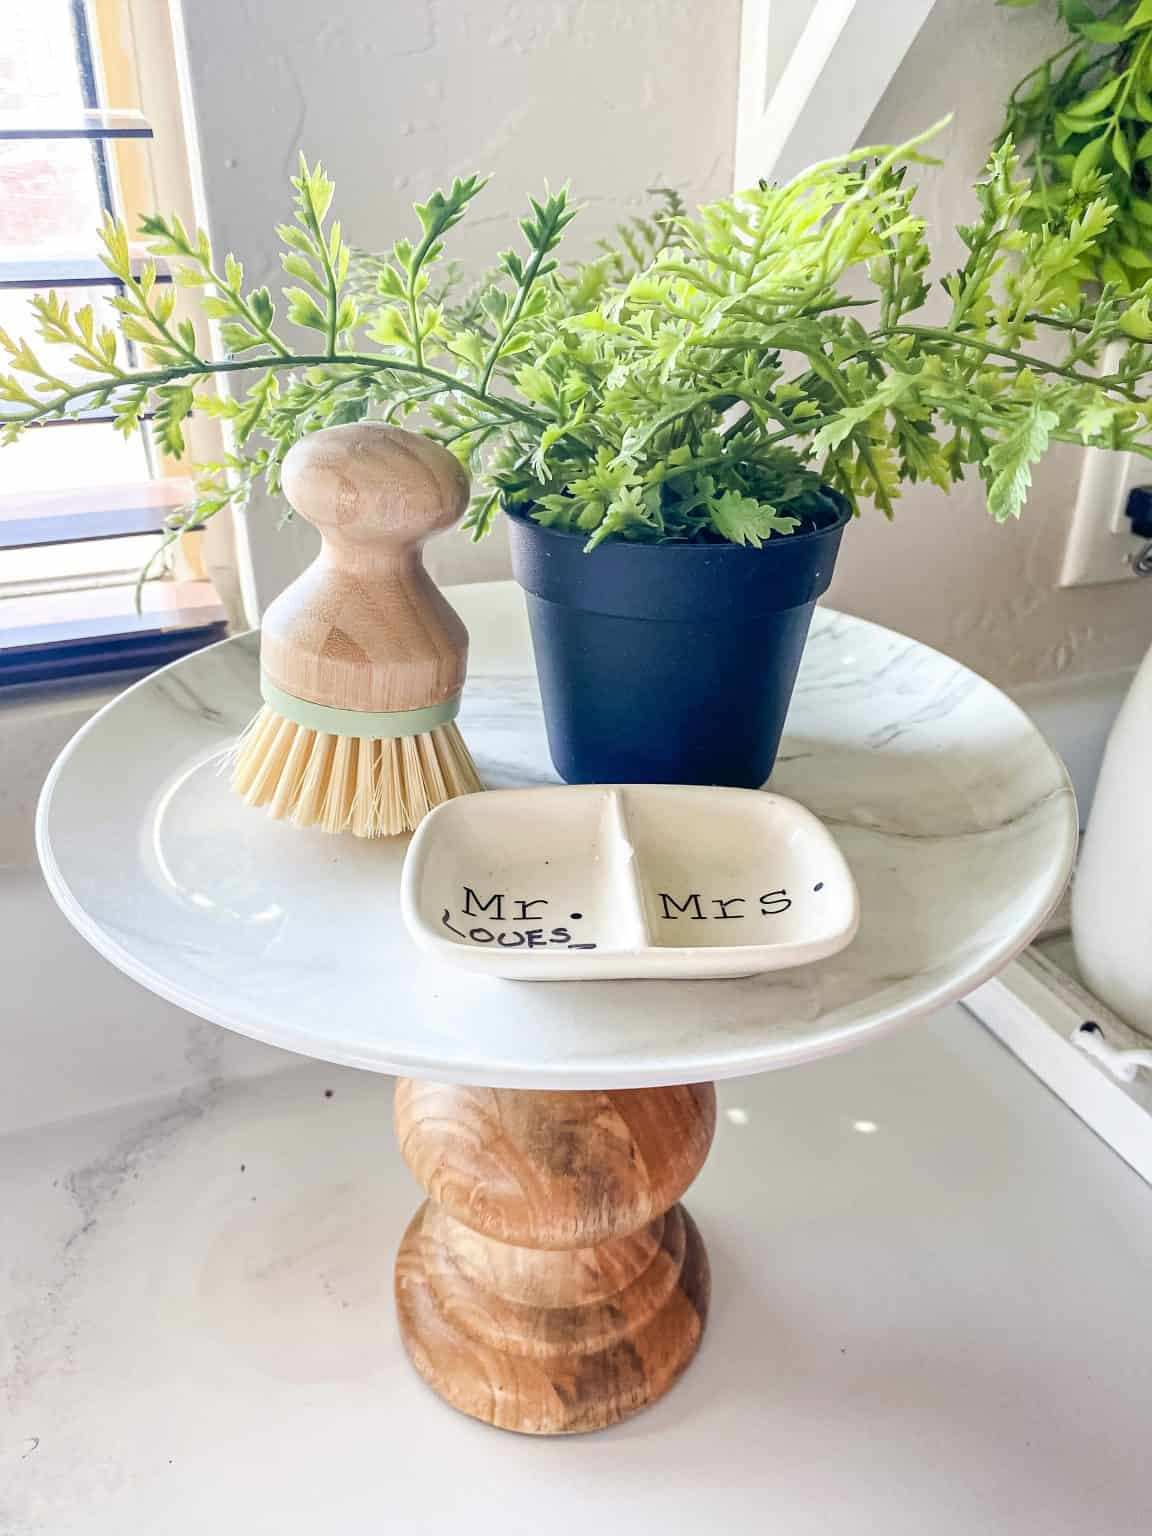 diy cake stand with brush dish and plant on kitchen counter